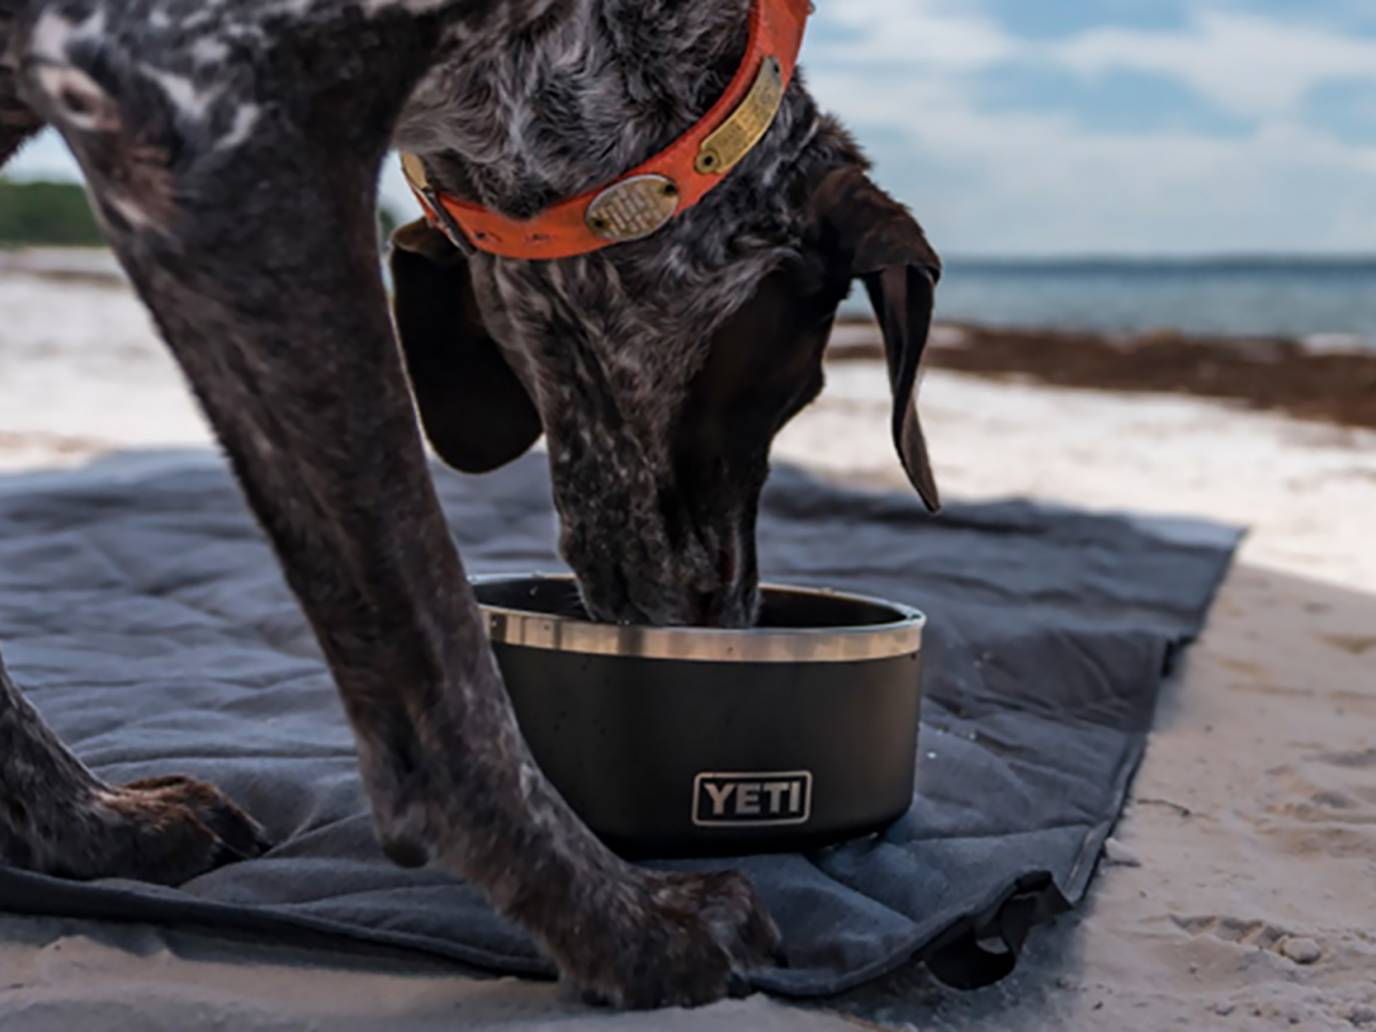 New Yeti Daypack Dog Bowl Camp Blanket And More